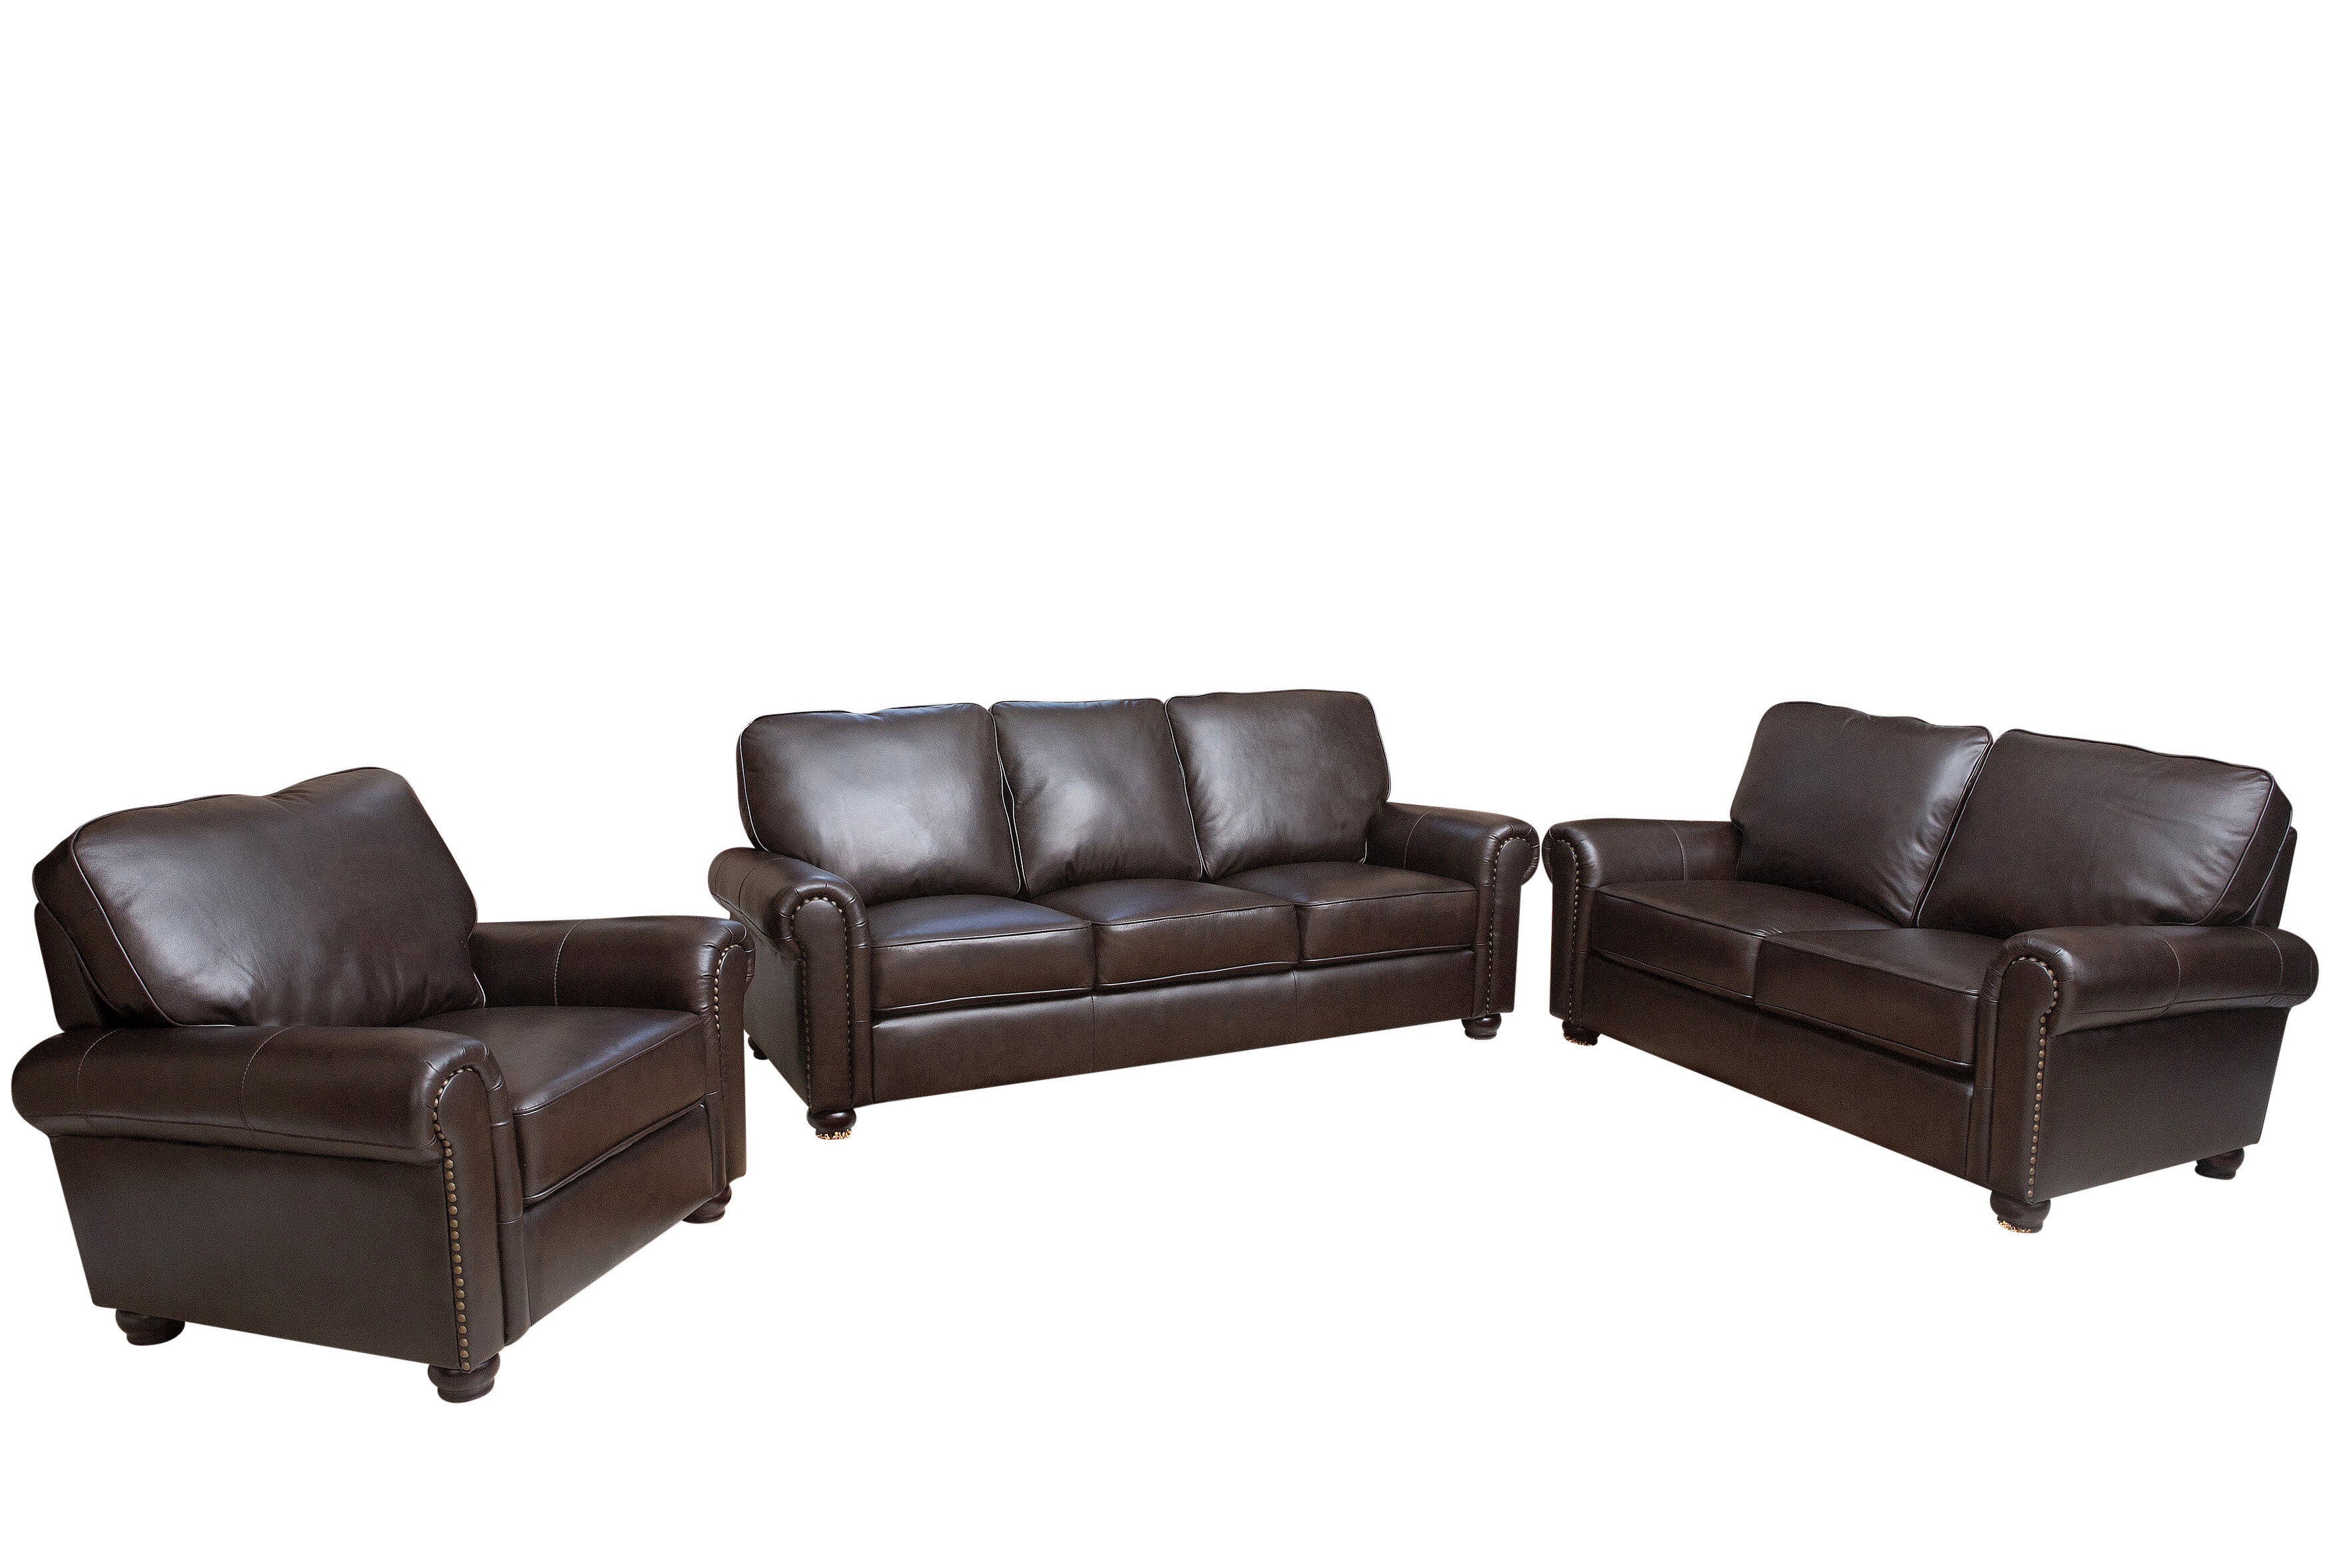 Darby Home Co Coggins 3 Piece Leather Living Room Set & Reviews ...